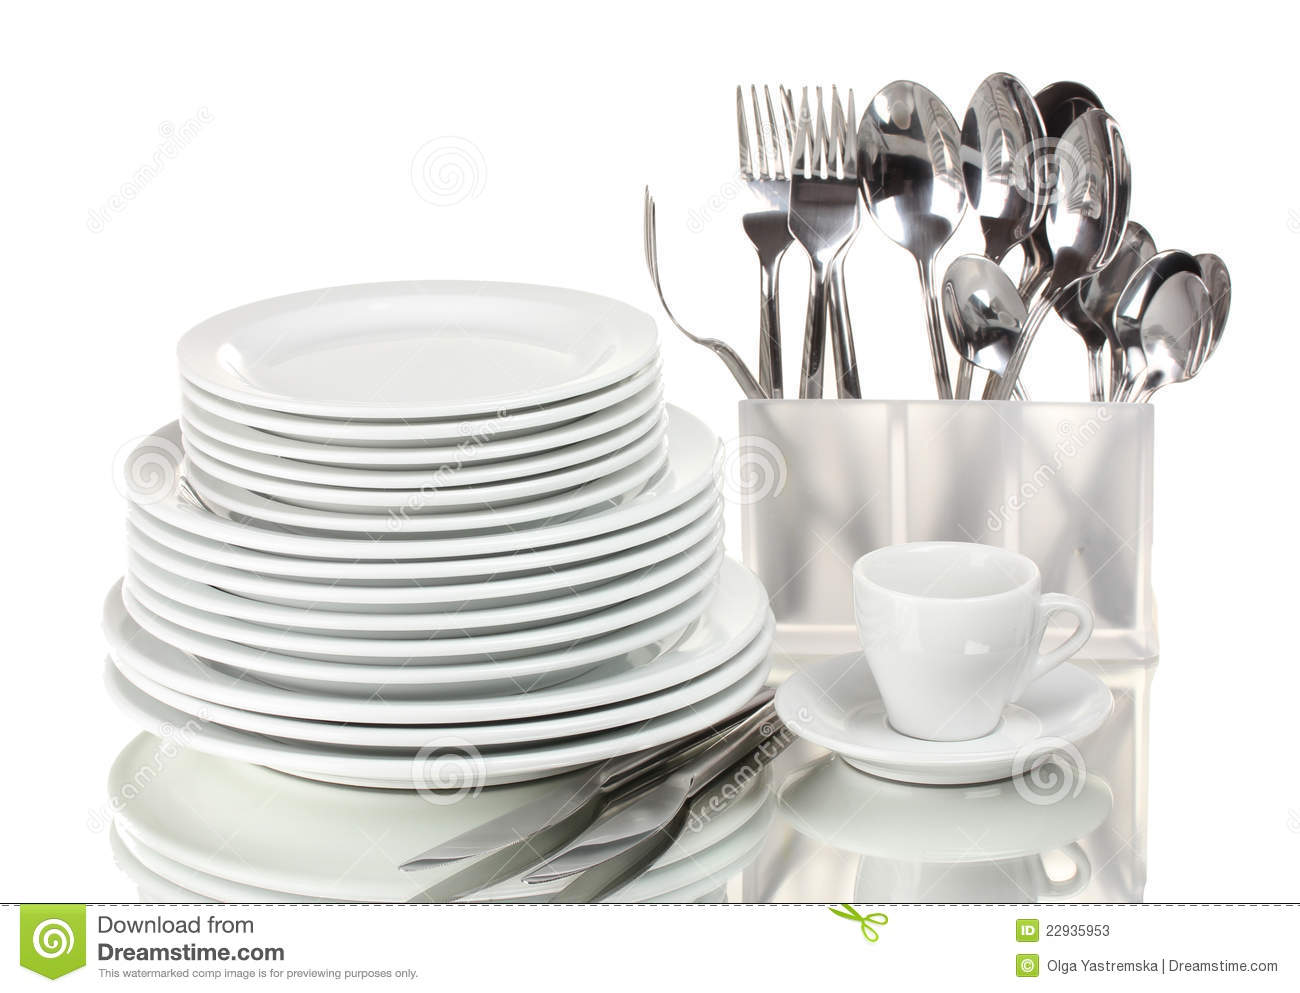 Clean Plates And Cutlery Stock Photos Image 22935953 : clean plates cutlery 22935953 from www.dreamstime.com size 1300 x 993 jpeg 107kB